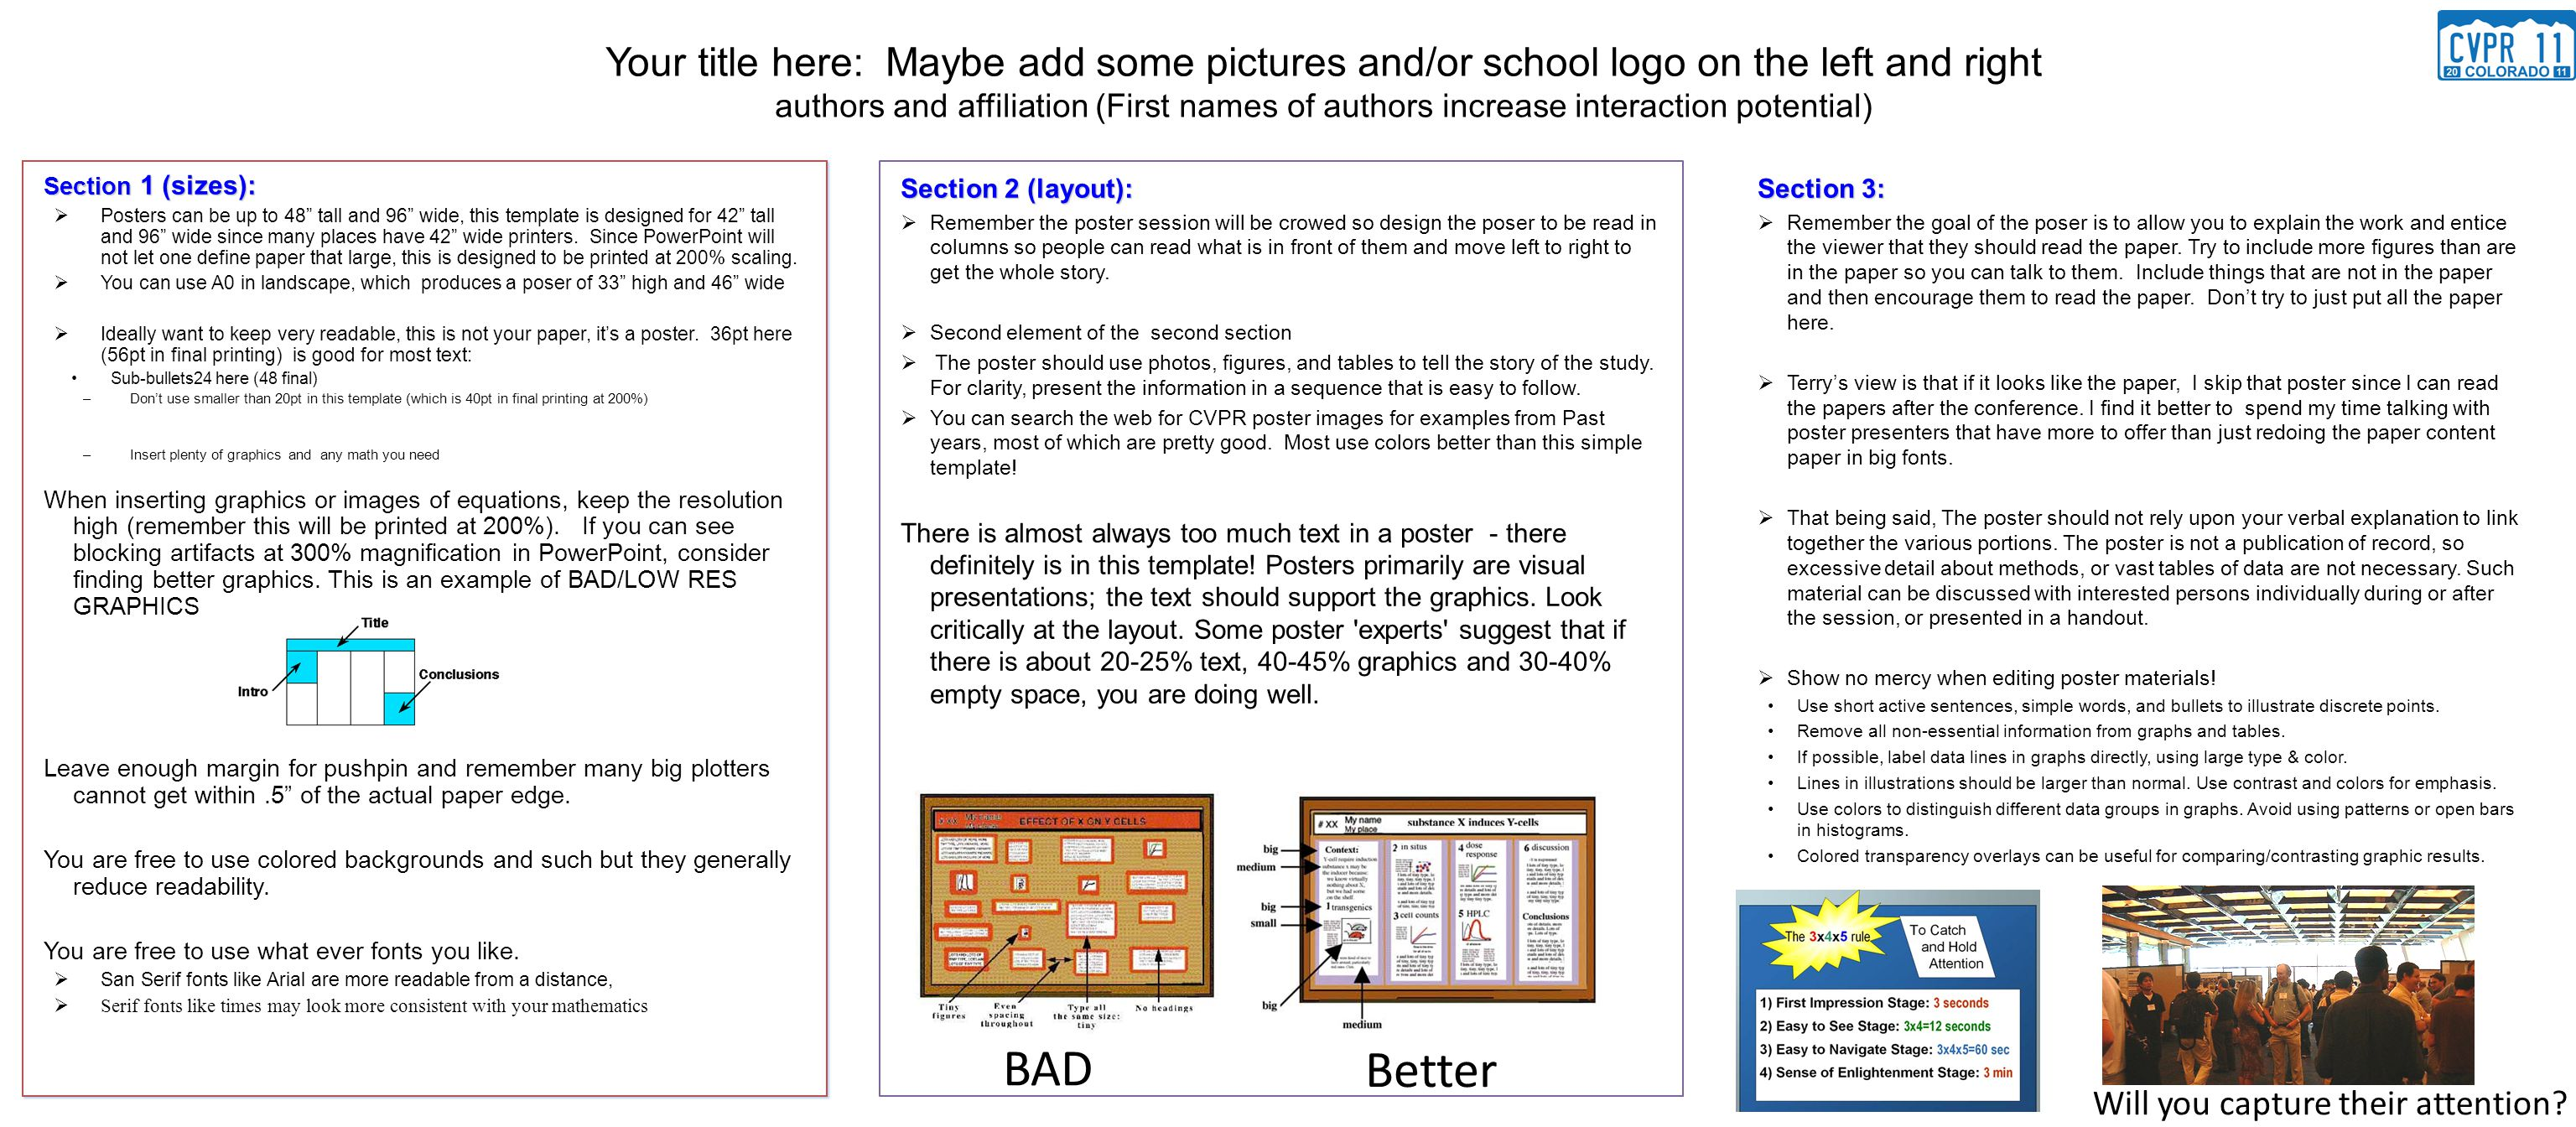 Your title here: Maybe add some pictures and/or school logo on the left and right authors and affiliation (First names of authors increase interaction potential) Section 1 (sizes):  Posters can be up to 48 tall and 96 wide, this template is designed for 42 tall and 96 wide since many places have 42 wide printers.